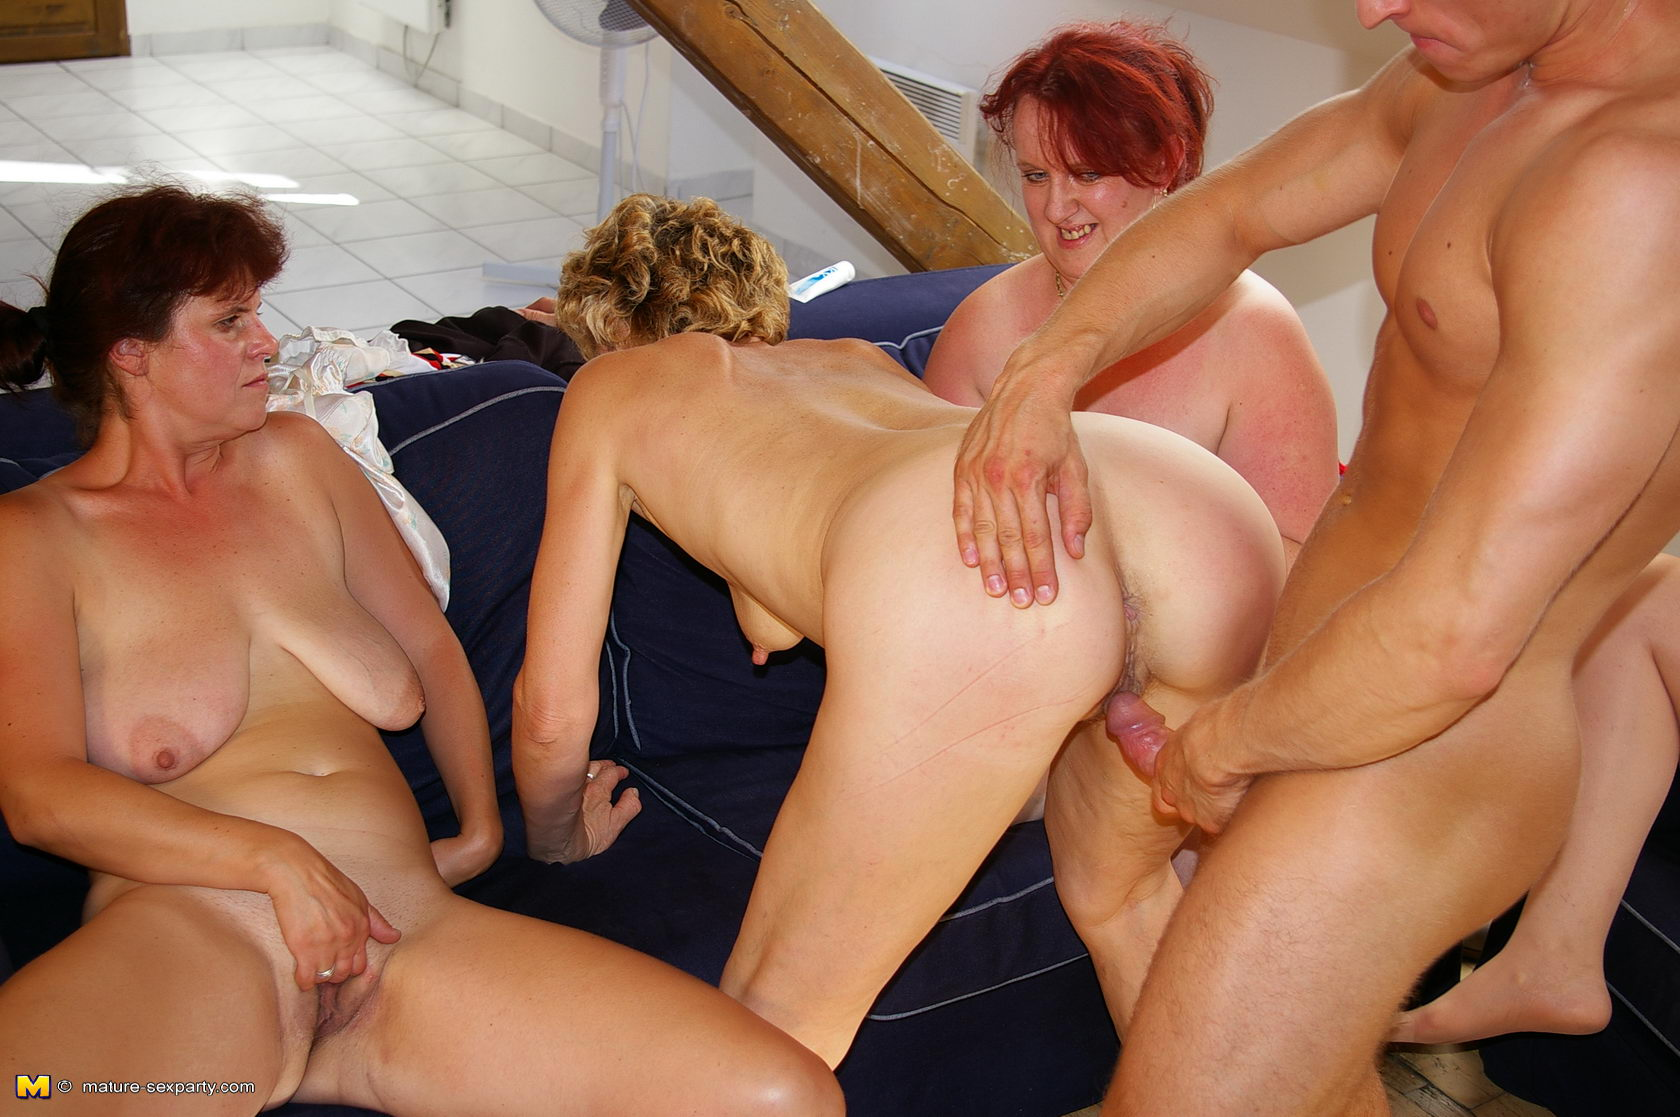 Topless orgy mature women have